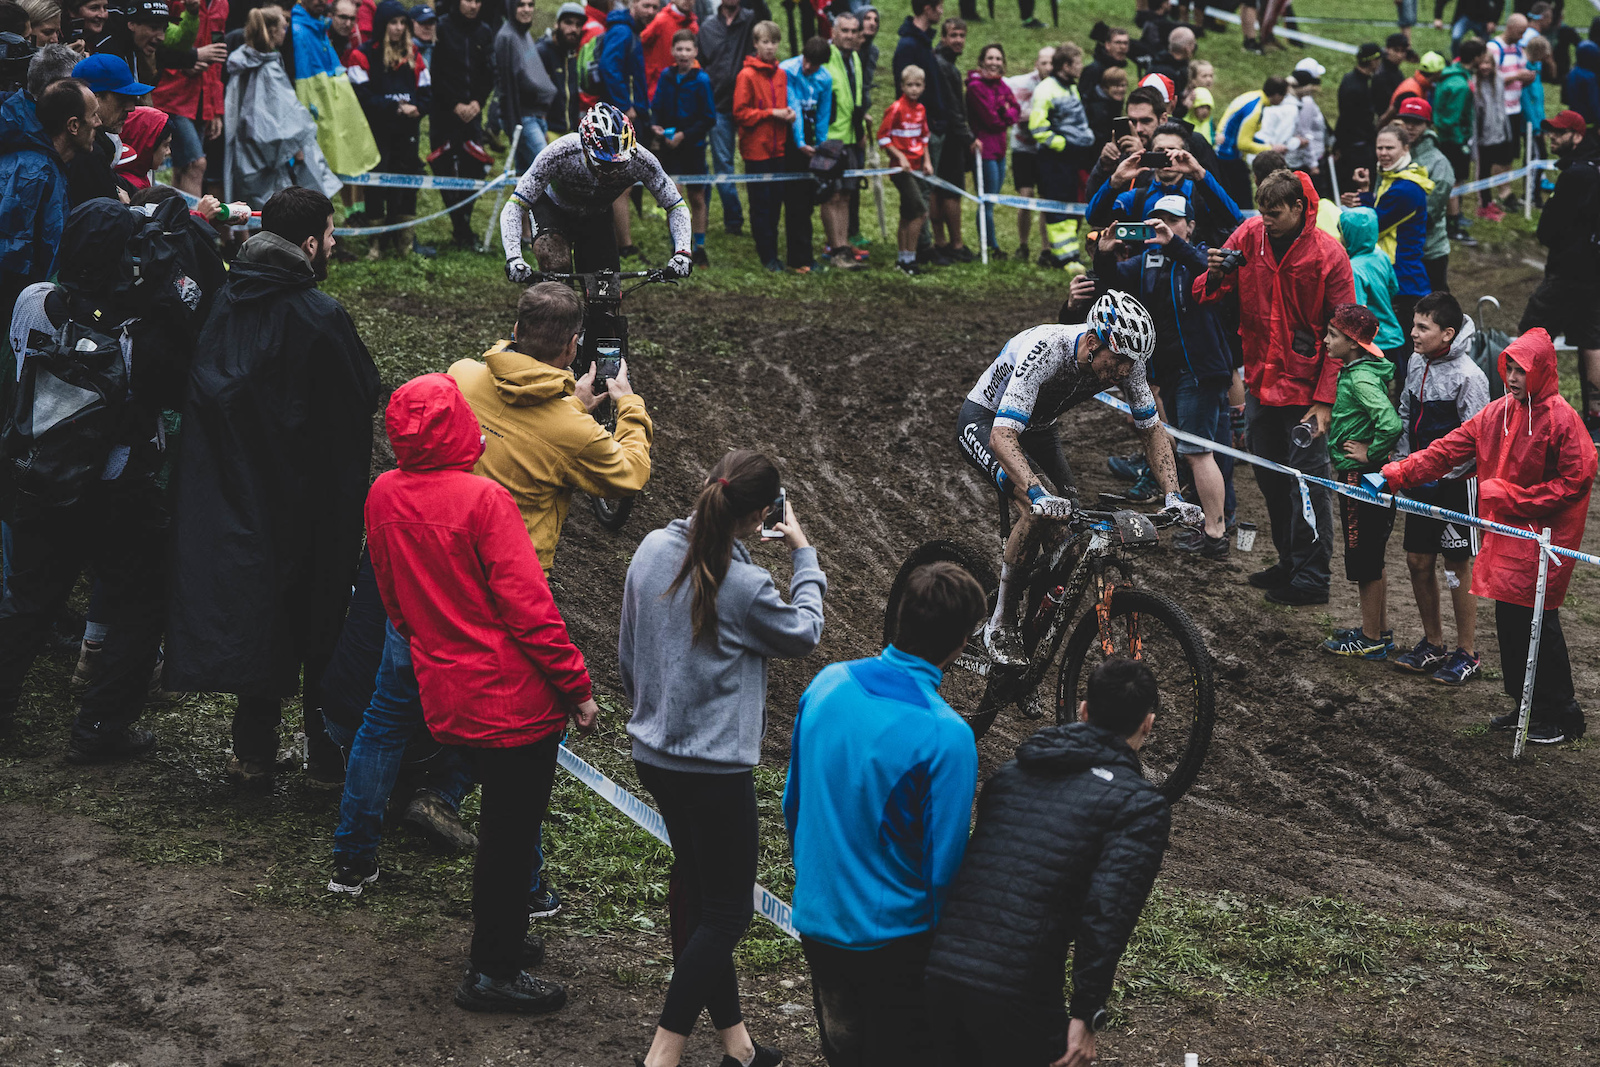 Try as he may Henrique Avancini could not hold off van der Poel in the slop. When MVDP decided it was time to go he was off like a rocket.